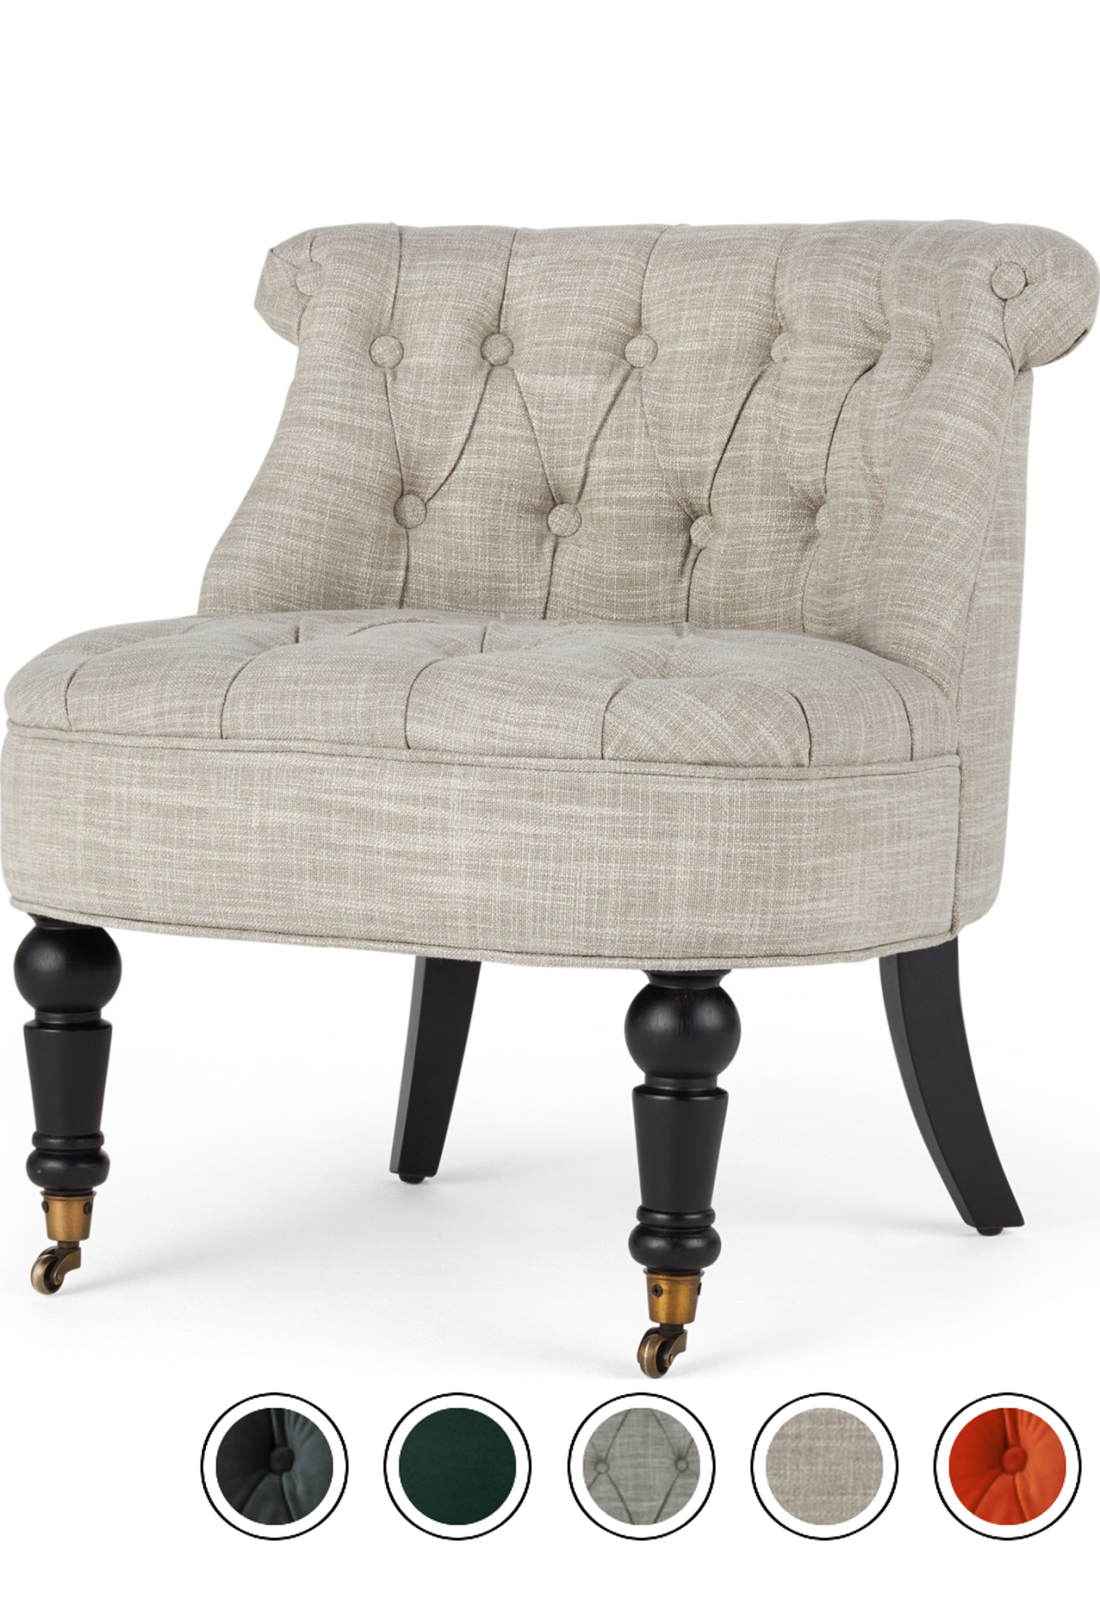 MADE Accent Chair, Taupe Linen Mix. Express delivery ...